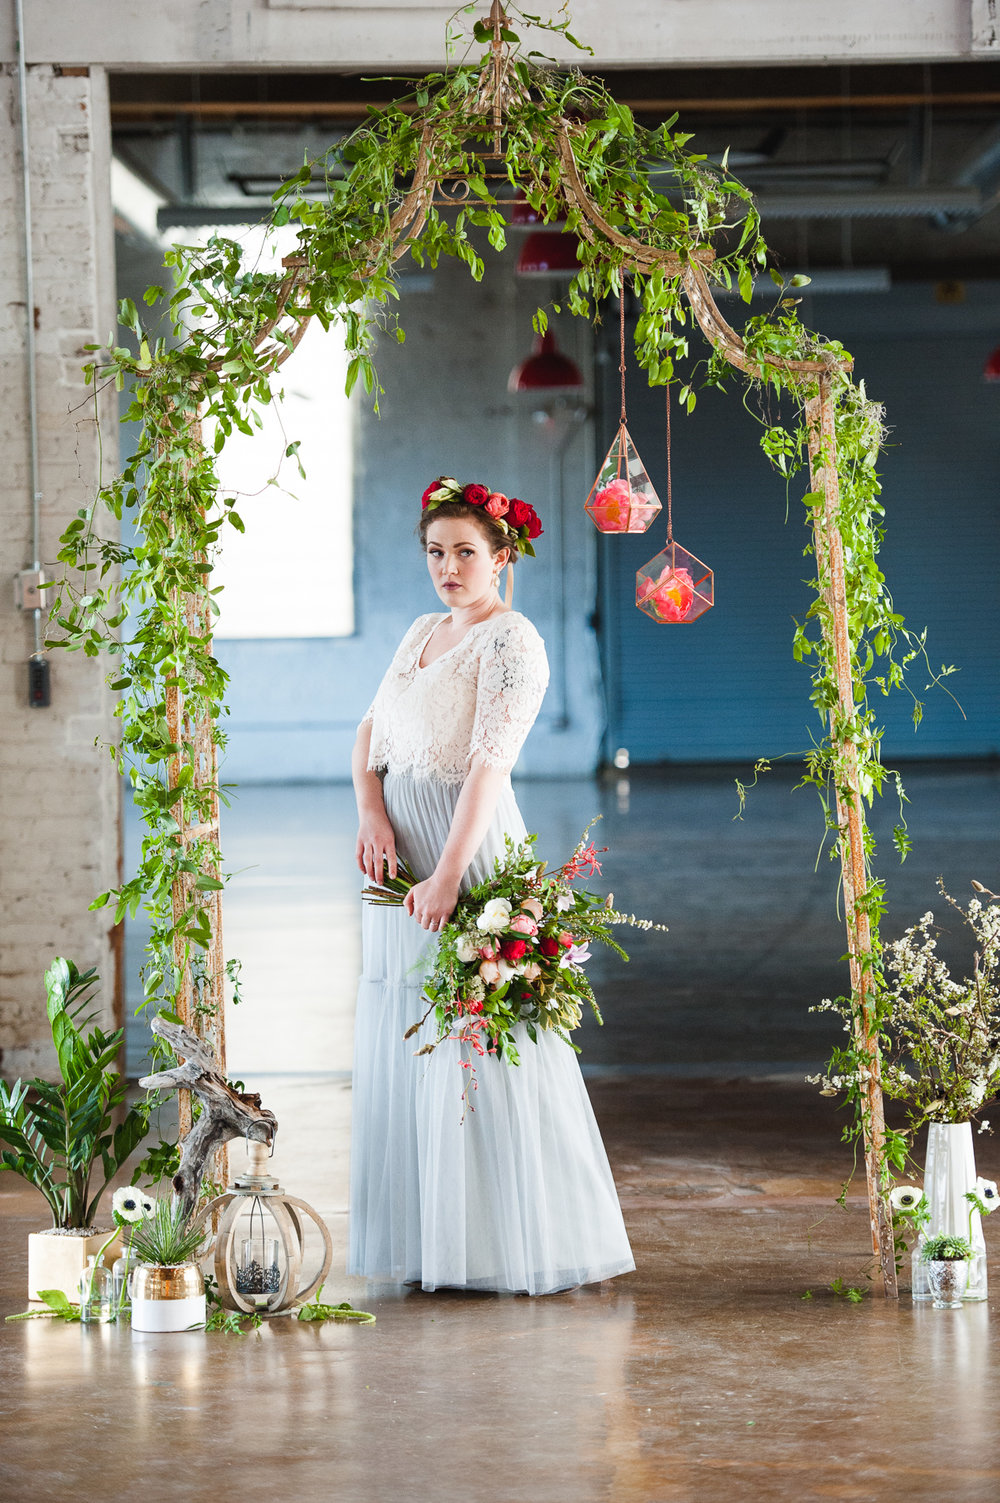 ck-Industrial-Rustic-Wedding-0321.jpg